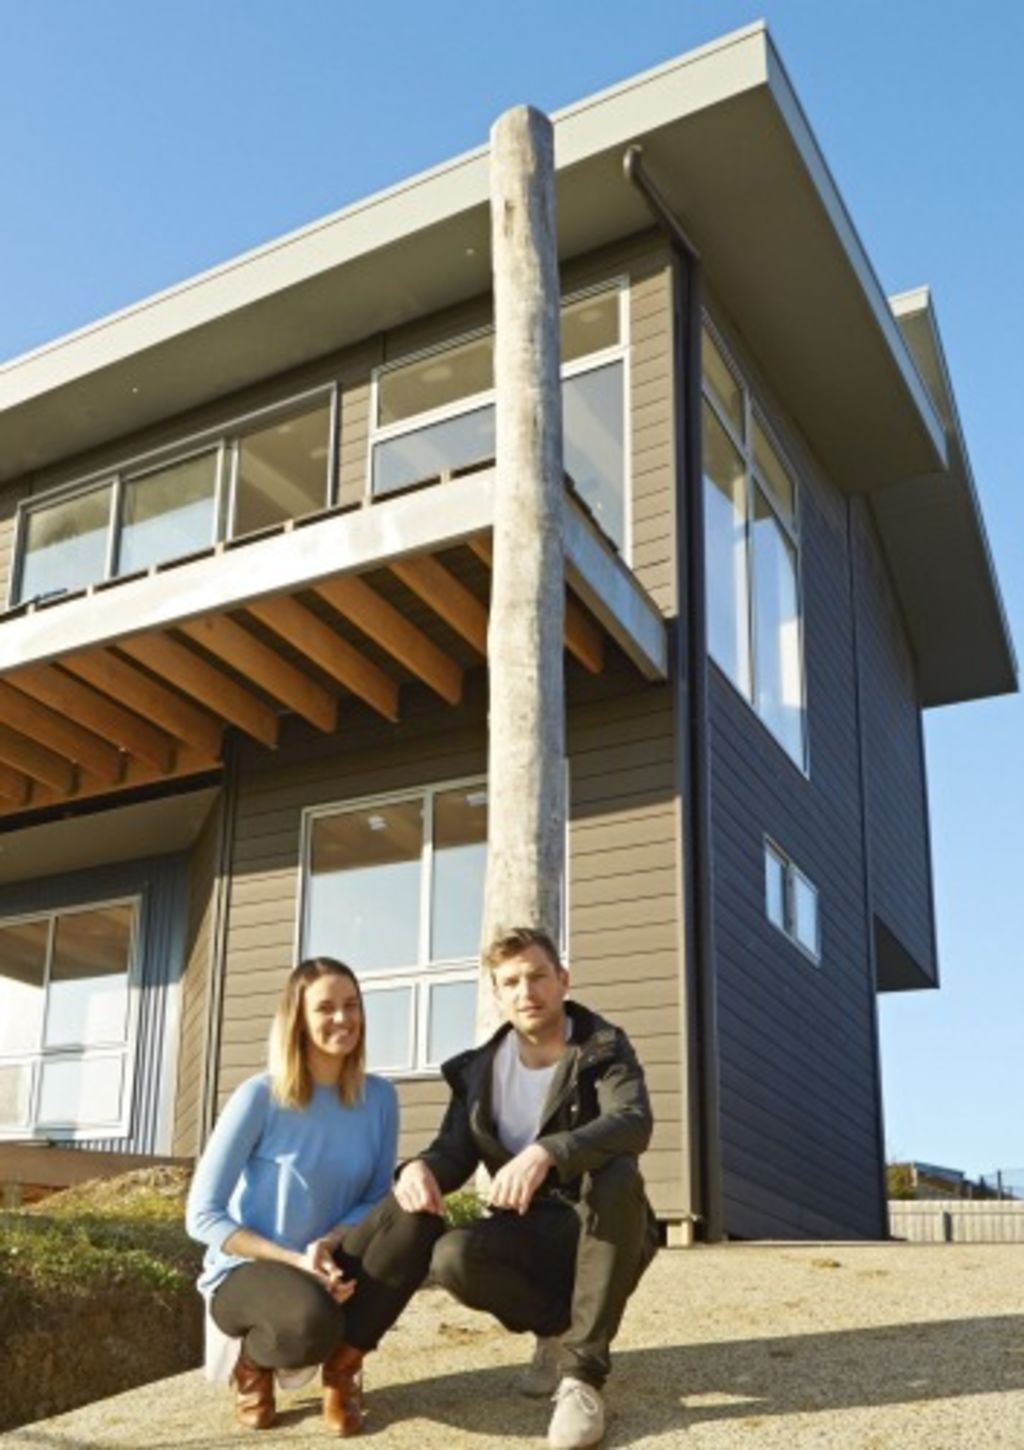 Sustainable: Kate Toholka and Tim Sonogan were determined to build their home to maximise sustainable living. Photo: Oliver Freeman